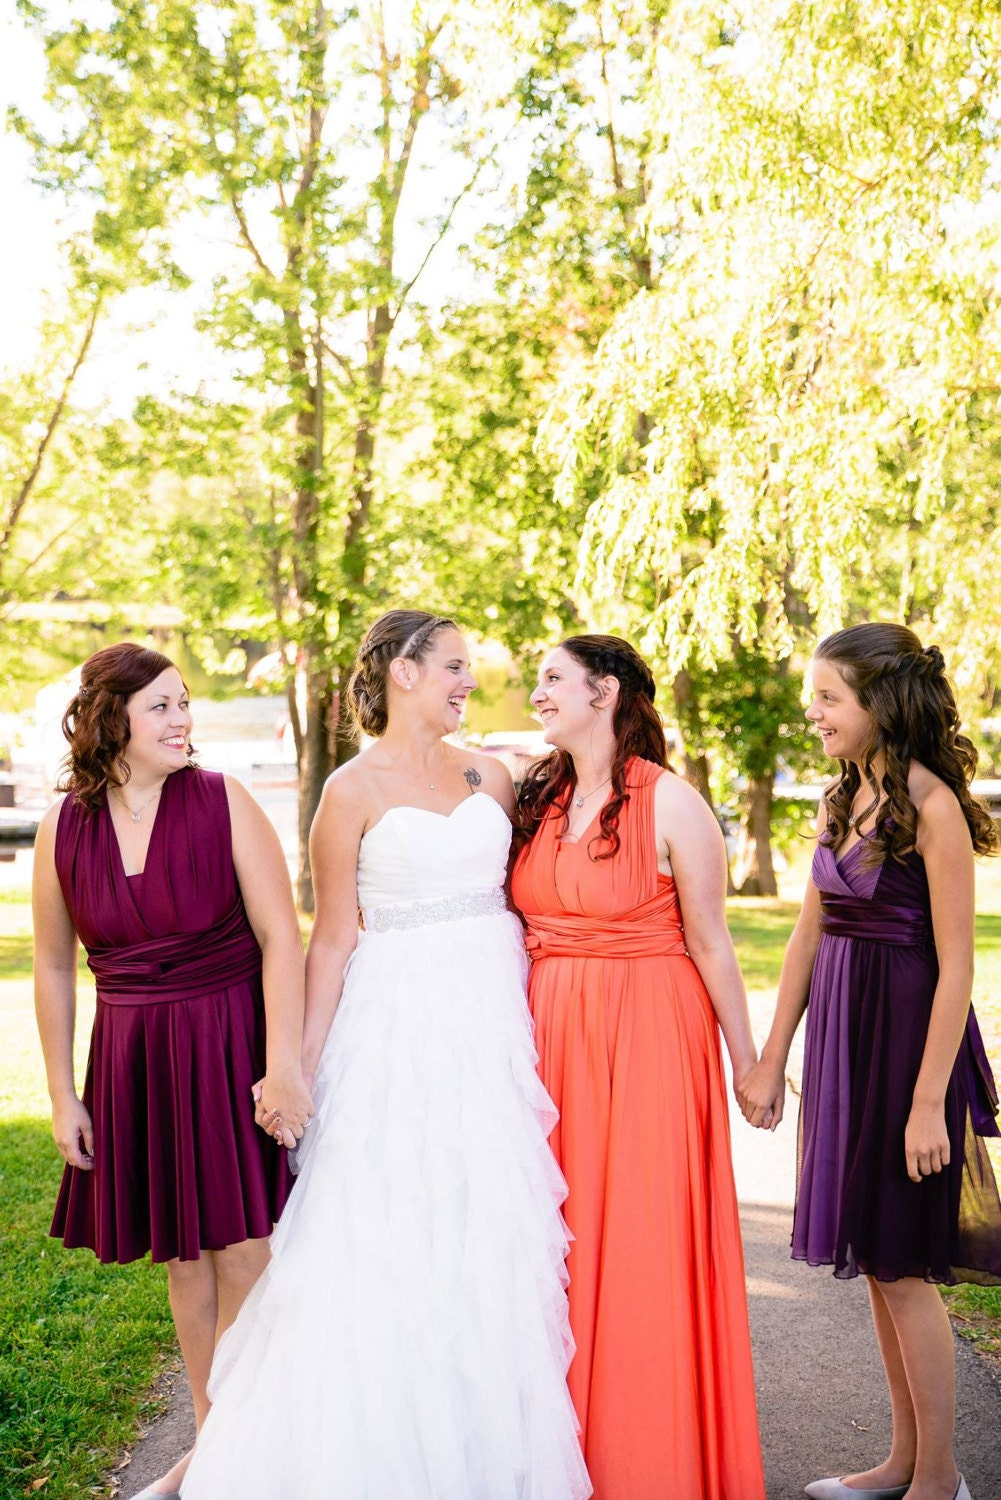 Tinas autumn wedding bridesmaid dresses bridal alterations by chavah designs ombrellifo Images